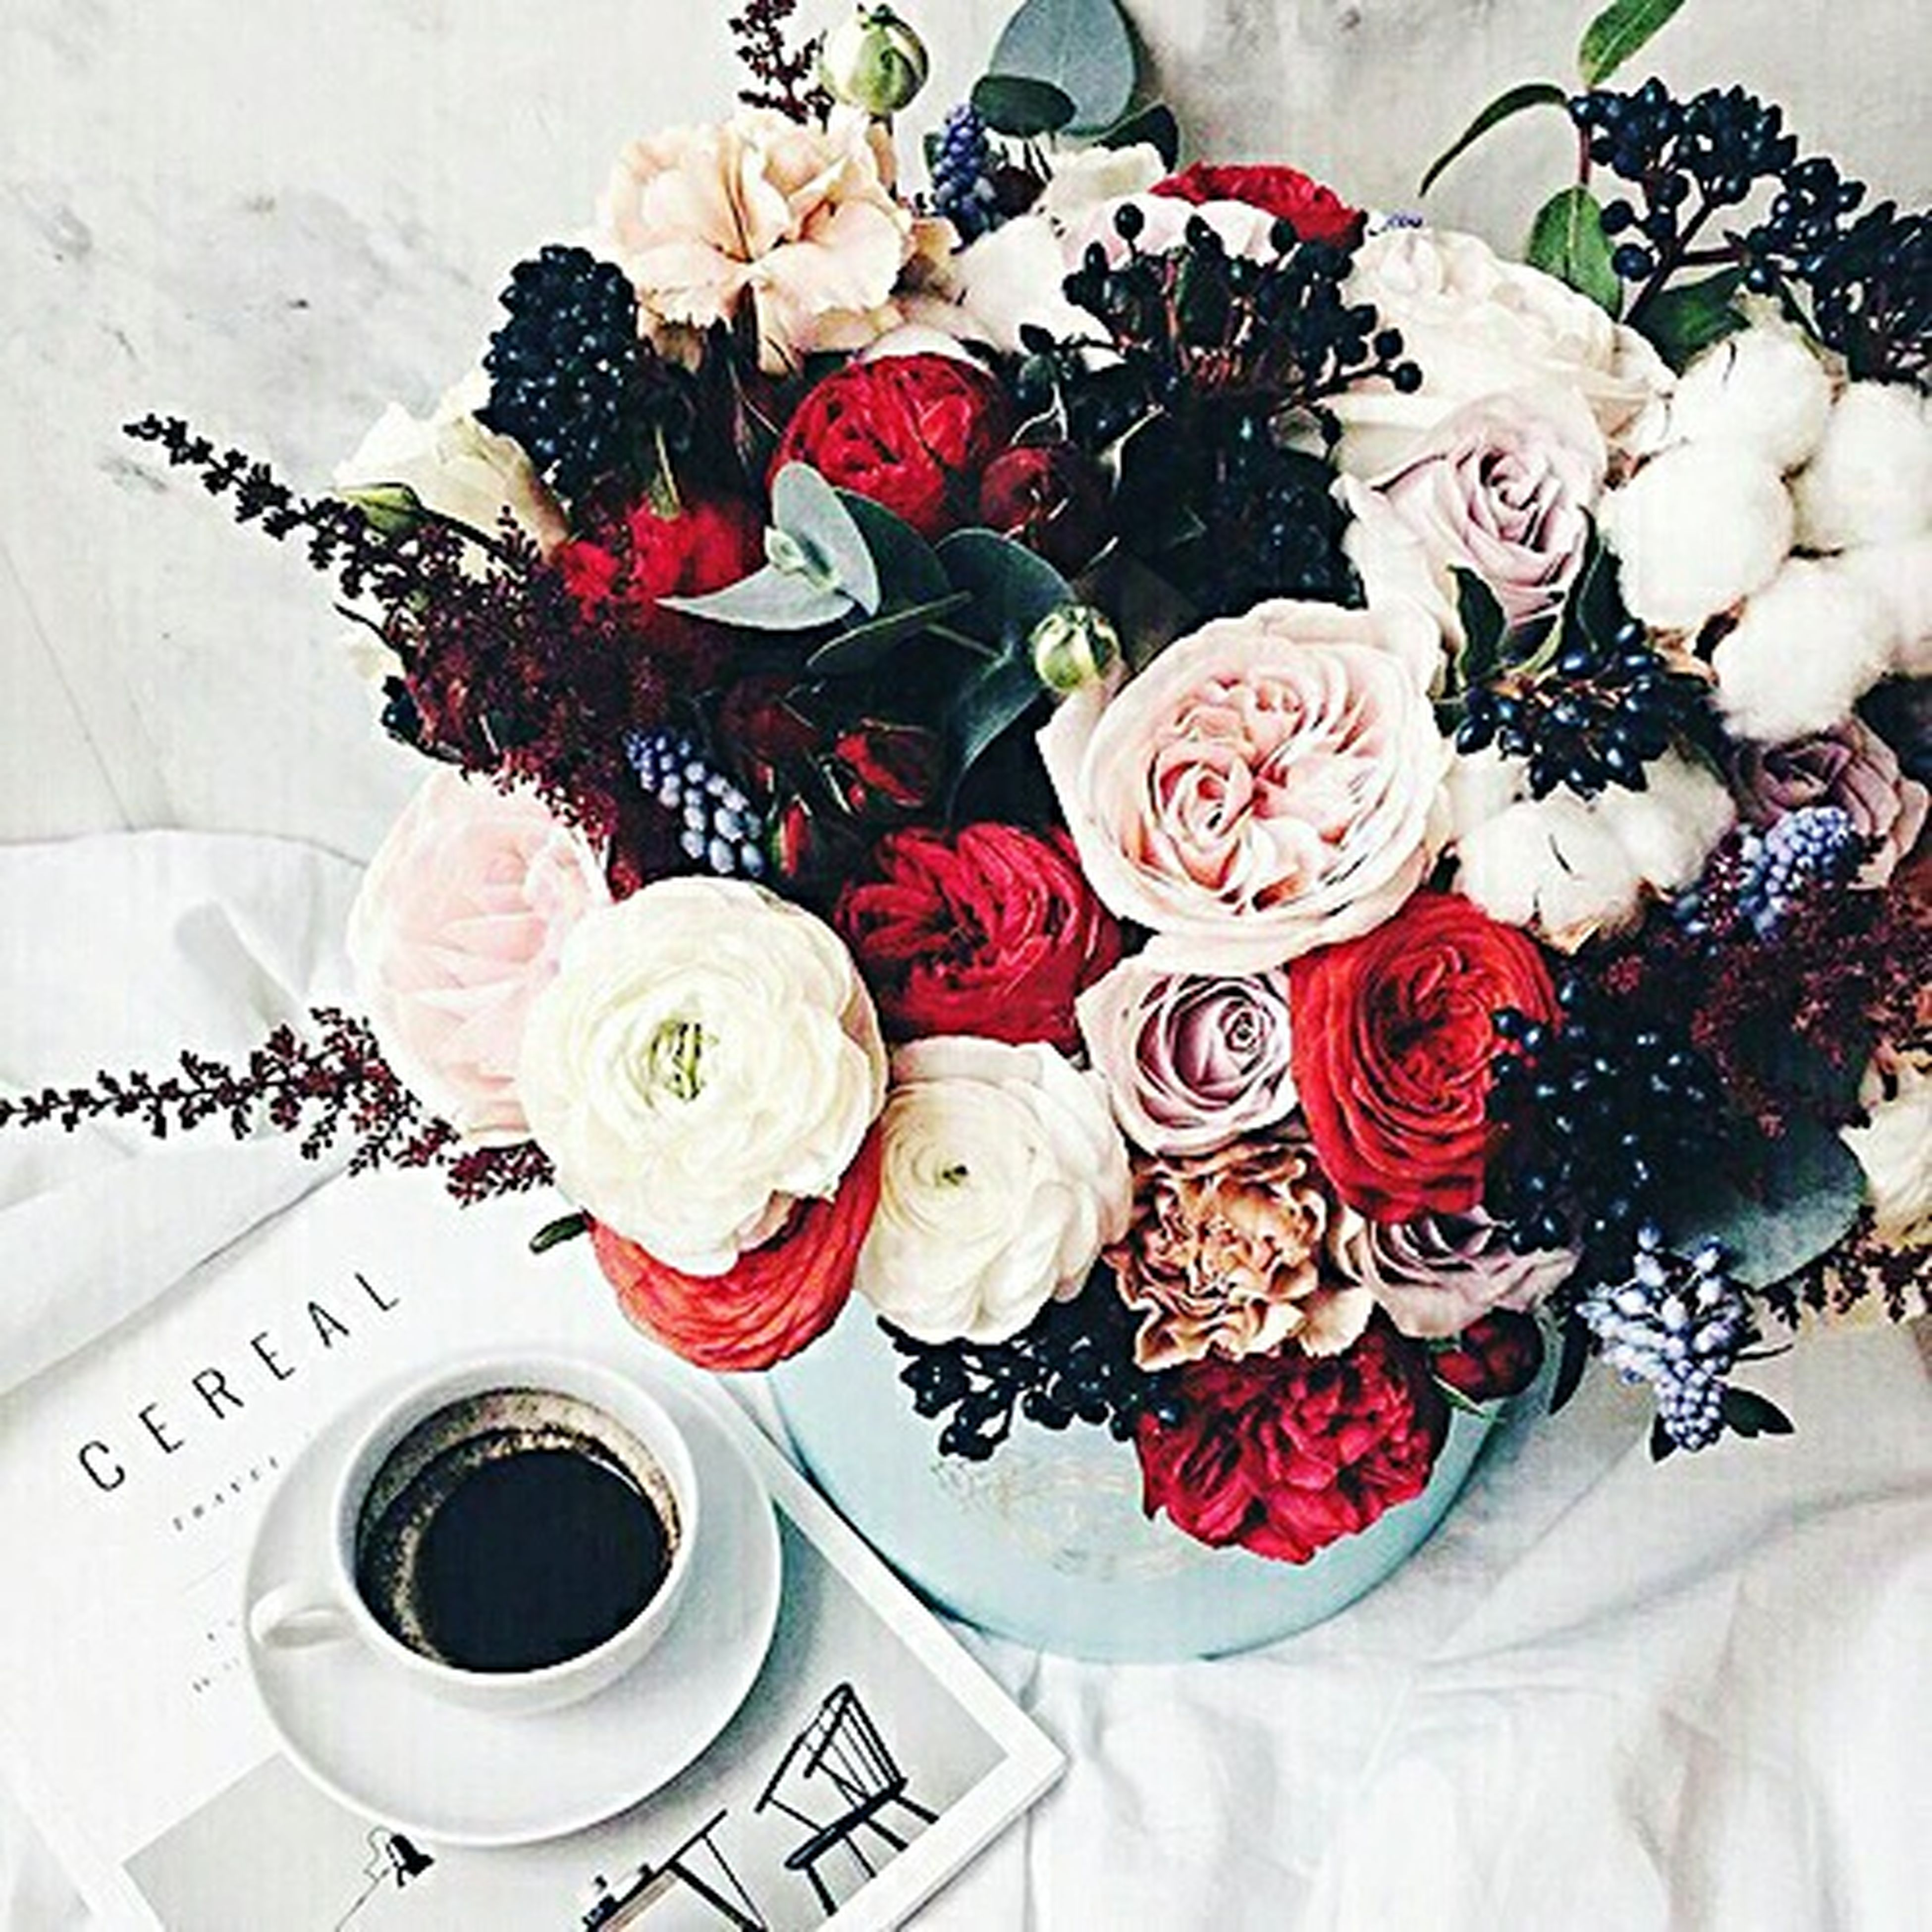 indoors, flower, freshness, table, coffee cup, food and drink, vase, high angle view, drink, coffee - drink, refreshment, still life, plate, cup, saucer, one person, rose - flower, food, sweet food, coffee